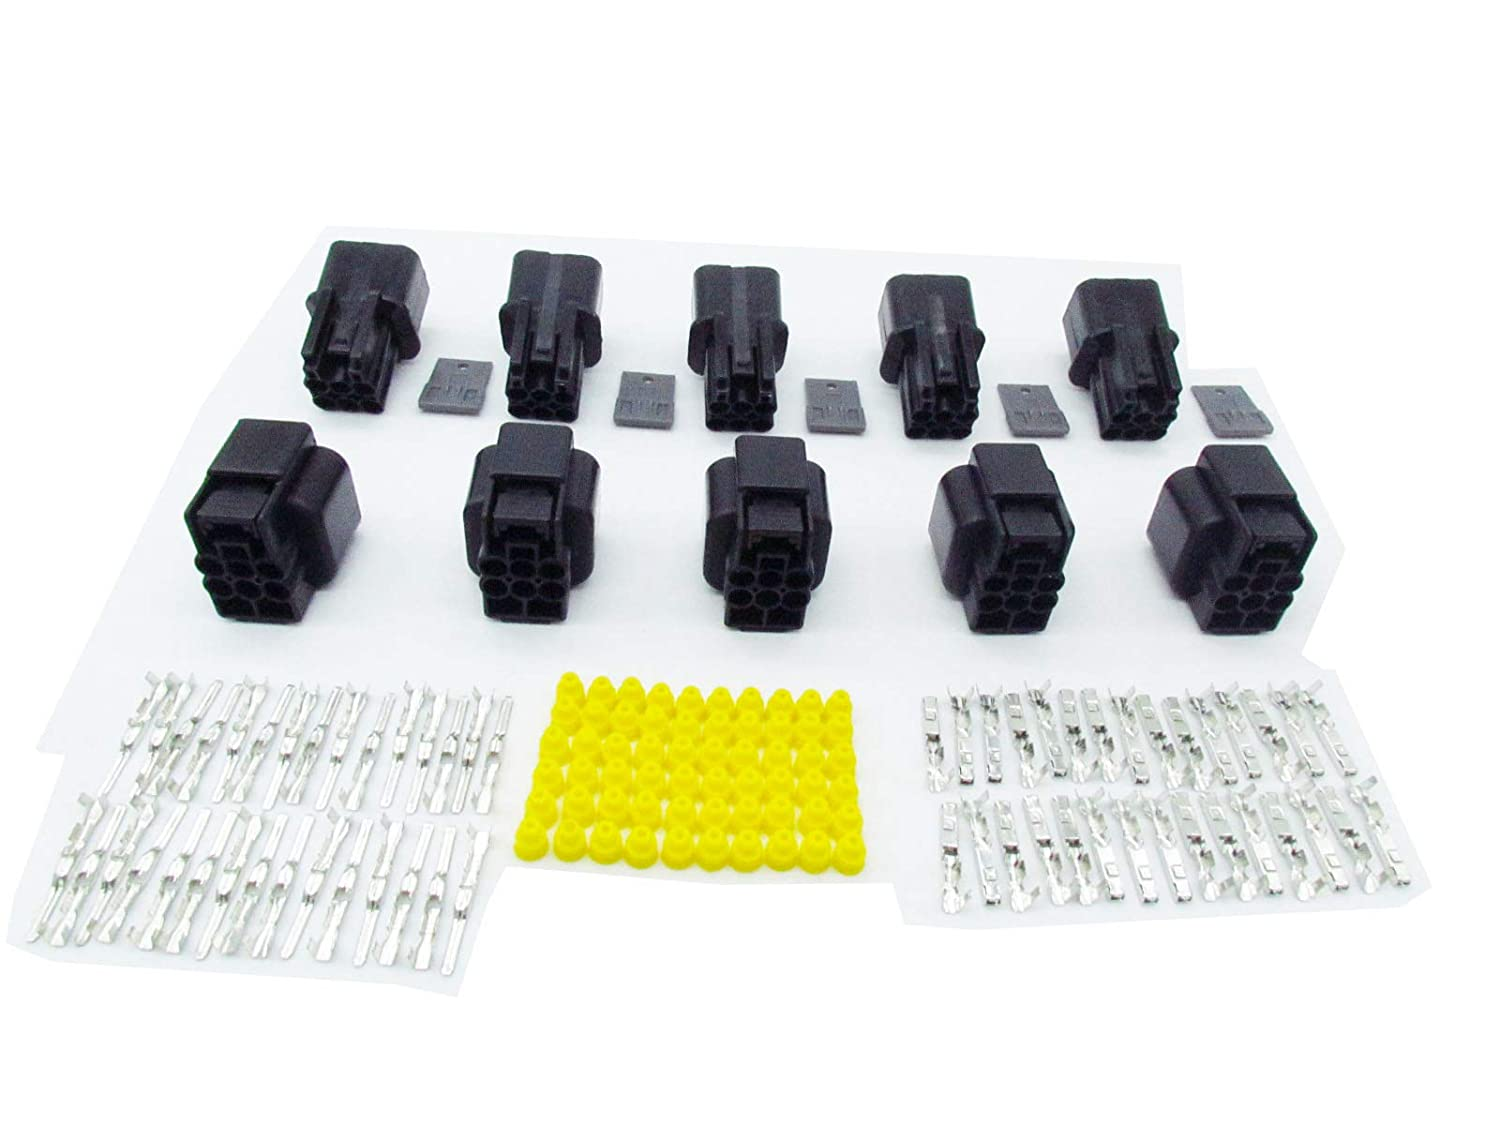 CNKF 5 Sets KUM NMWP Series 6 pin black waterproof male and female auto wire connector PB621-06020 PB625-06027 090